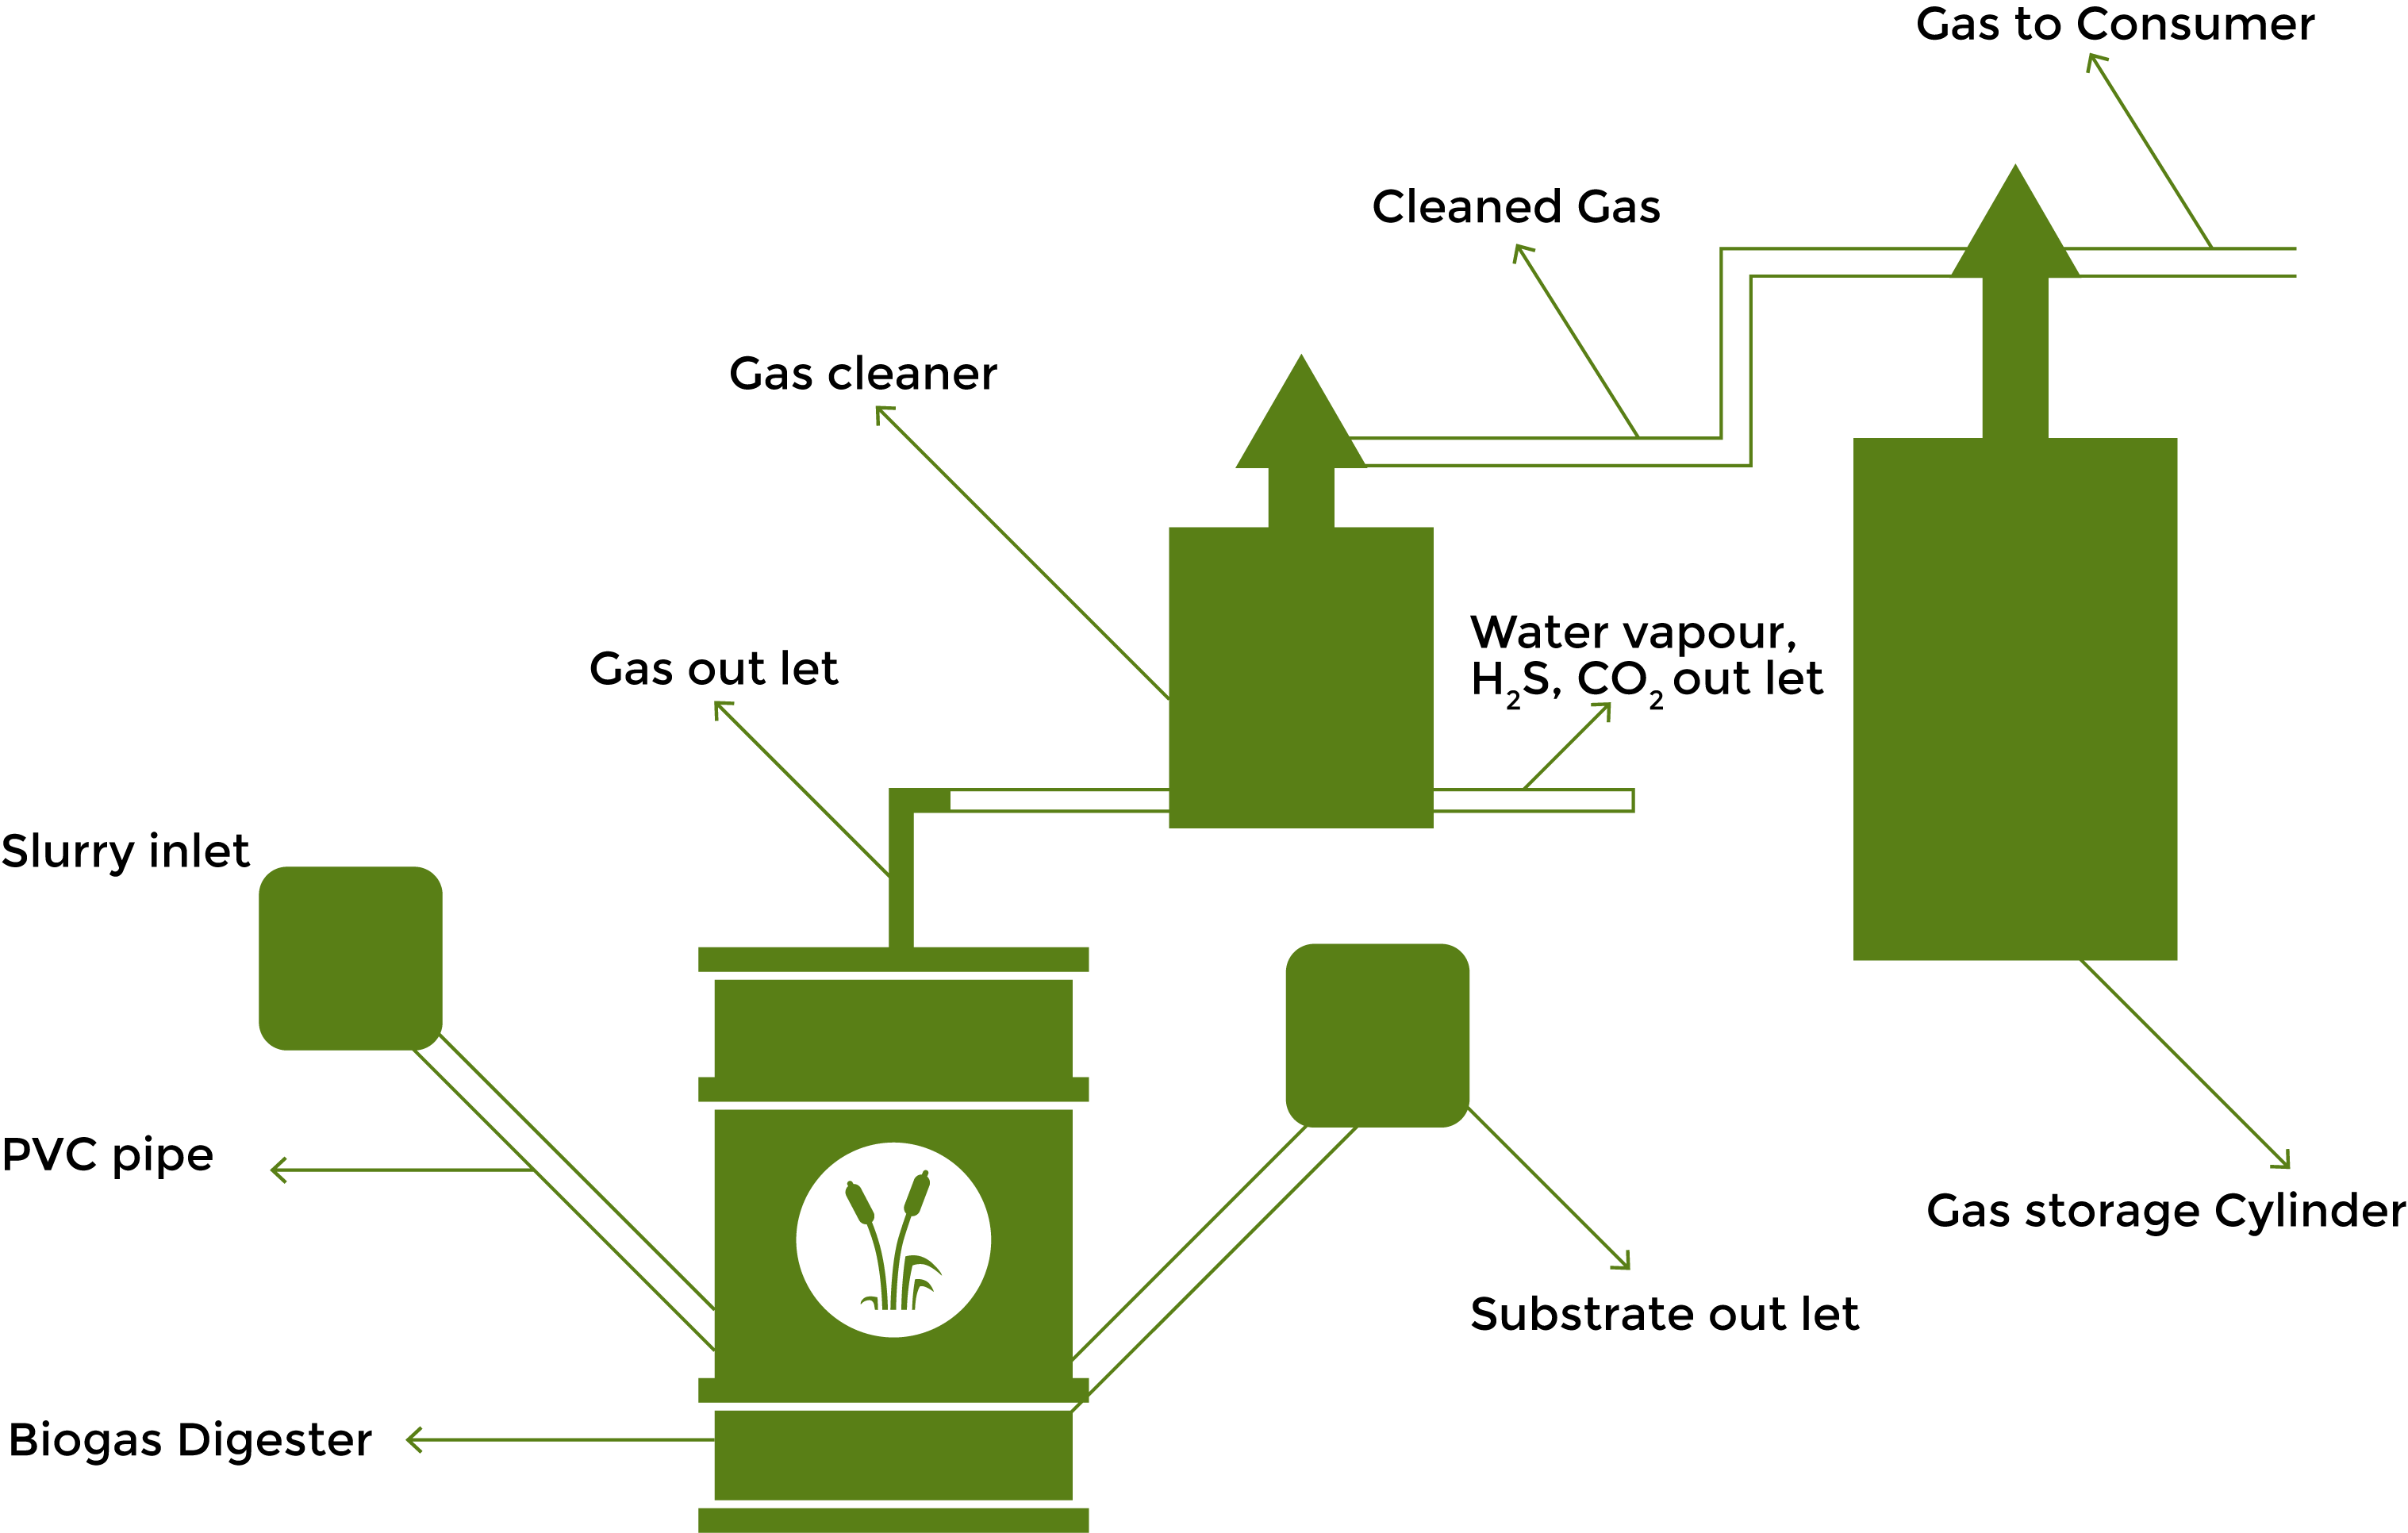 Biogas Novel Technology Digester Plant Diagram The Remains After Production Doesnt Have Much Value For Animal Feeding However As Co Product Of It Can Be An Organic Fertilizer According